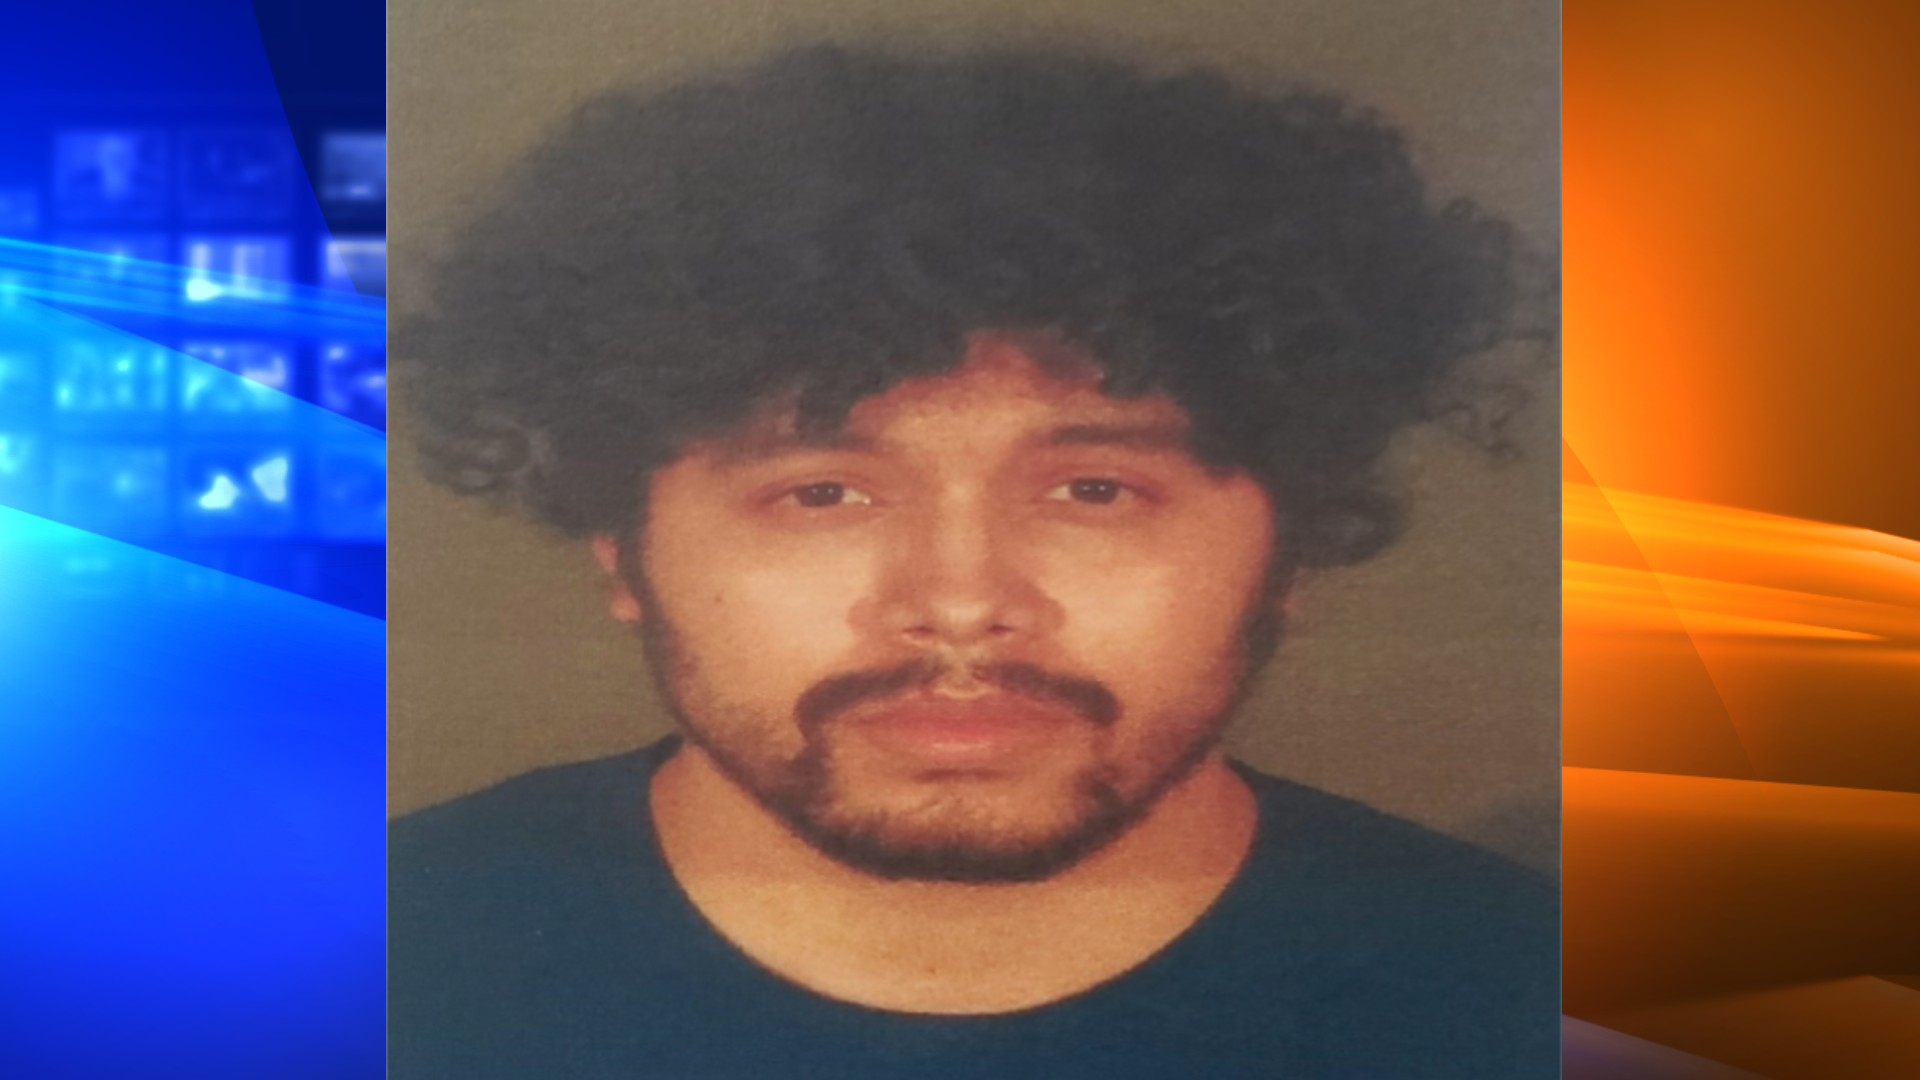 Daniel Velasco Moreno is seen in an undated booking photo released by the Los Angeles Police Department on Jan. 15, 2021.